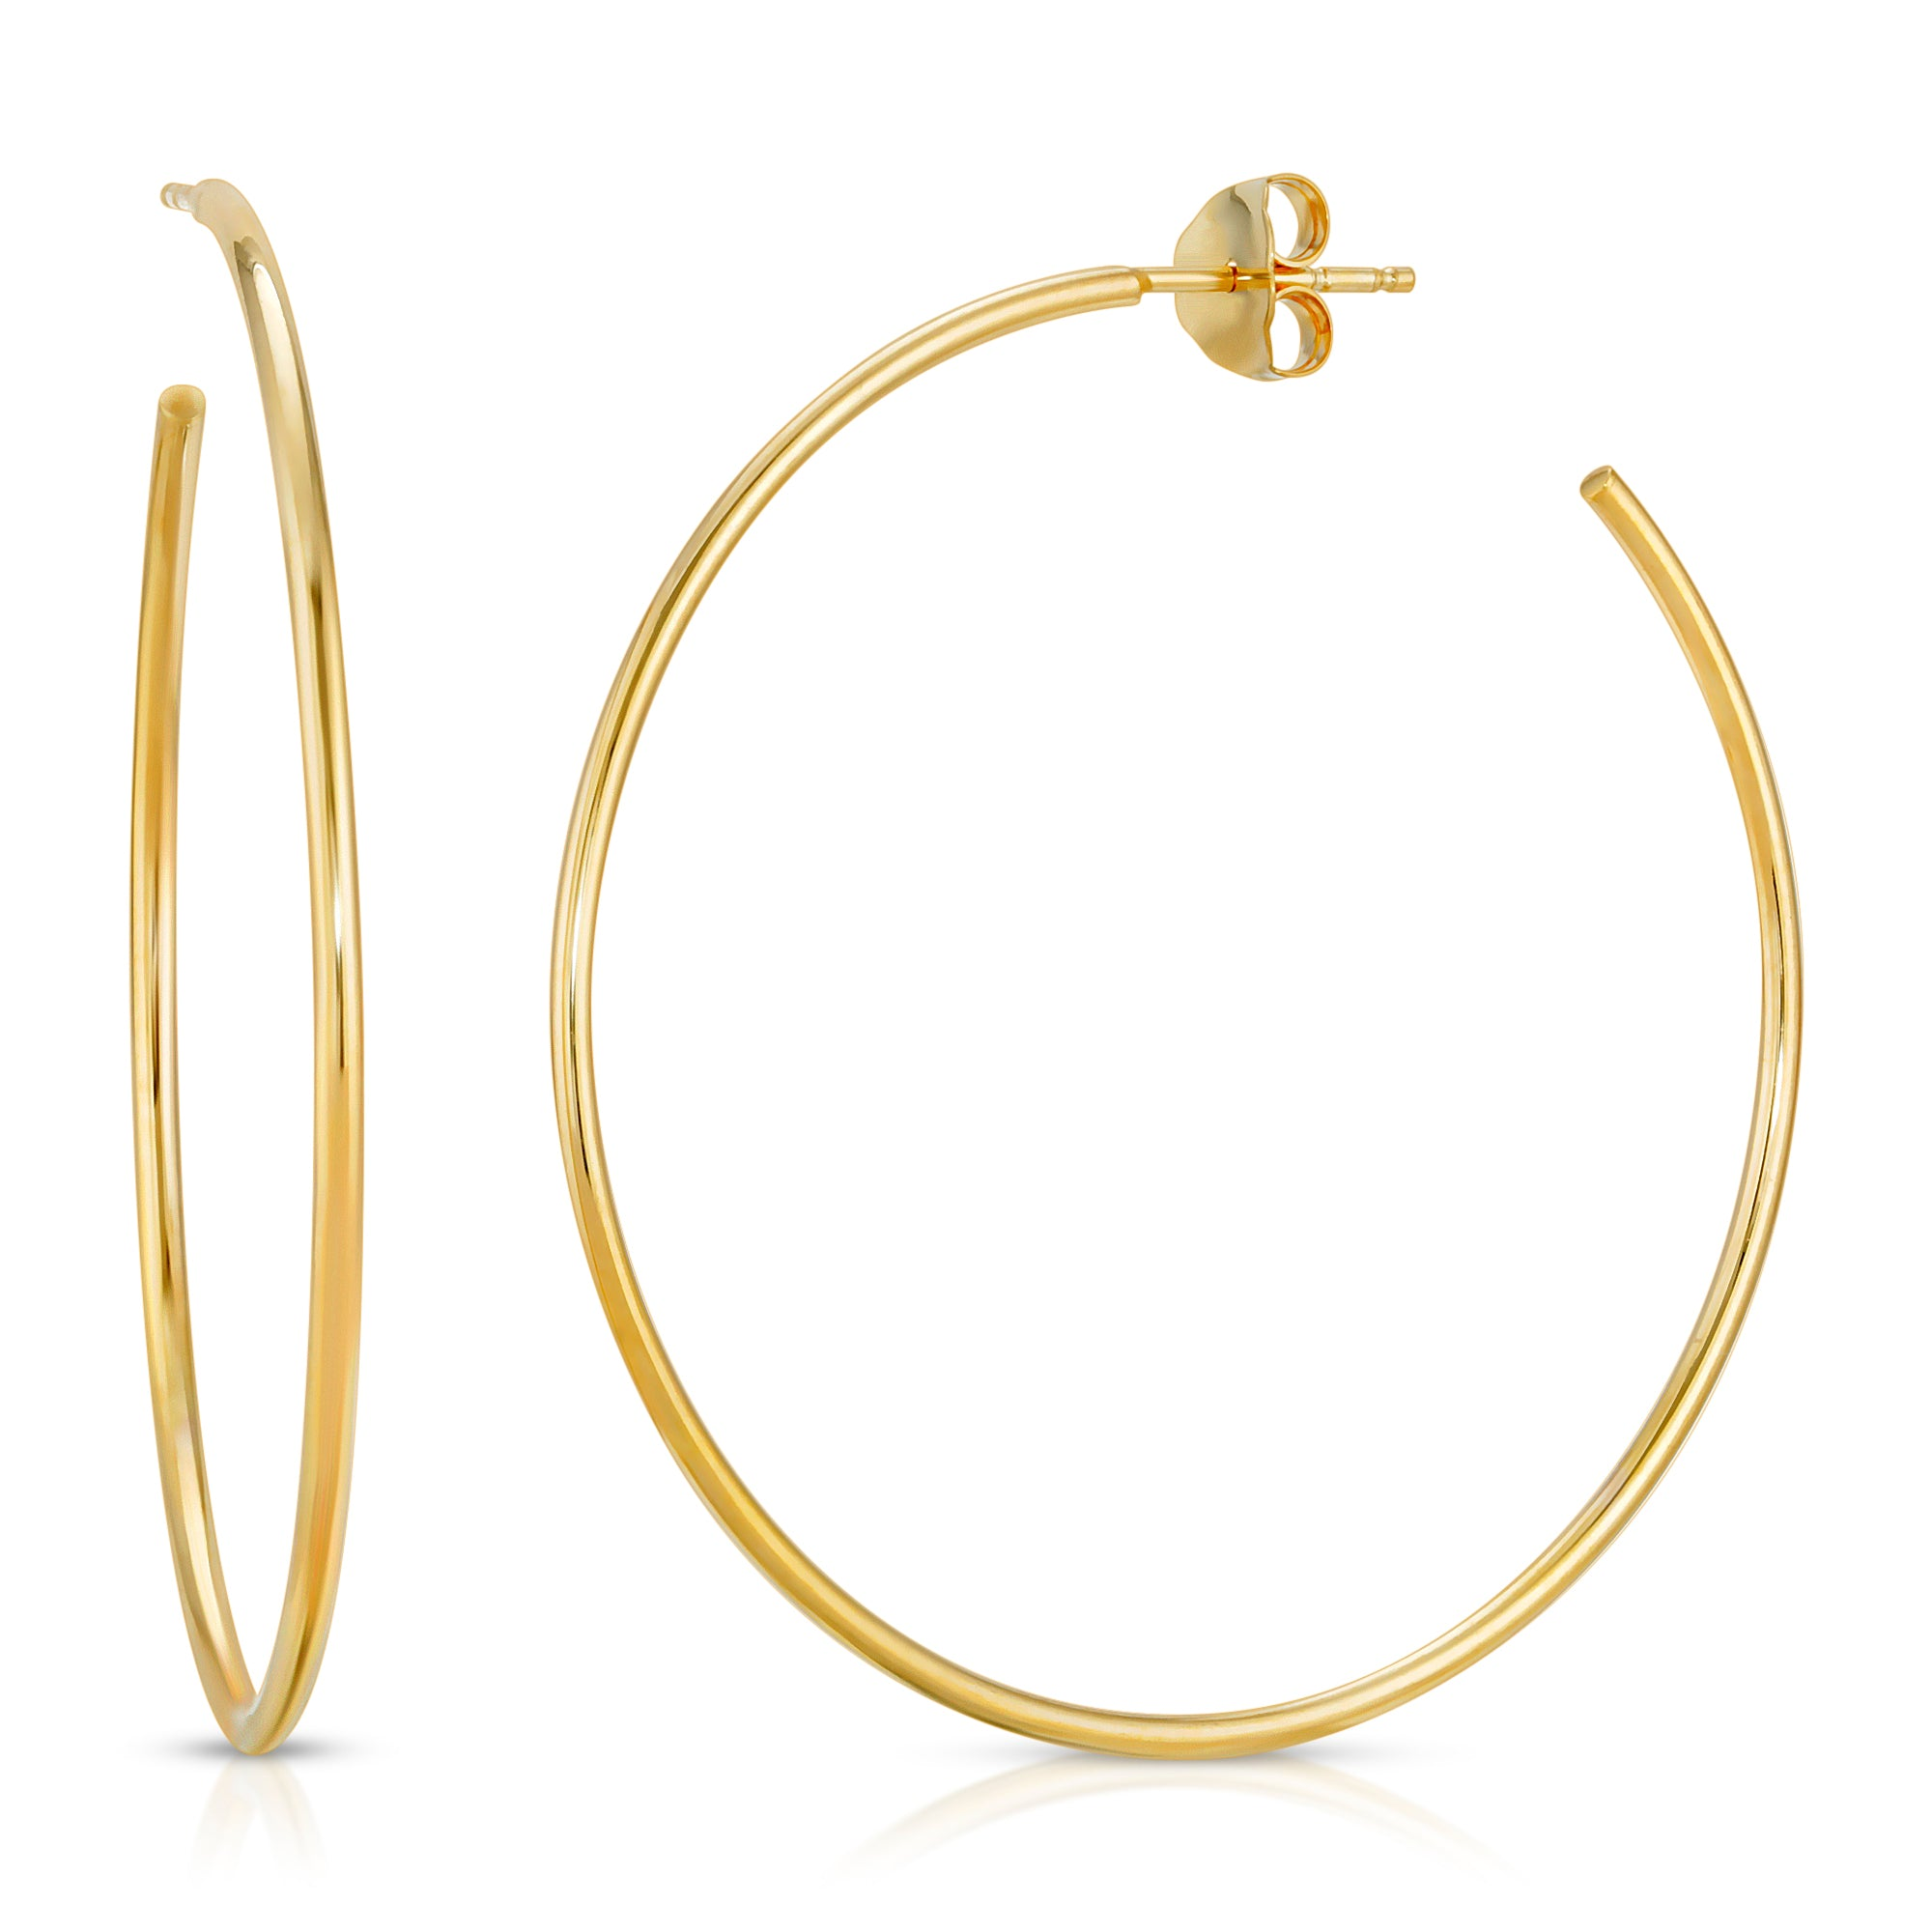 ULTRA THIN LARGE HOOPS